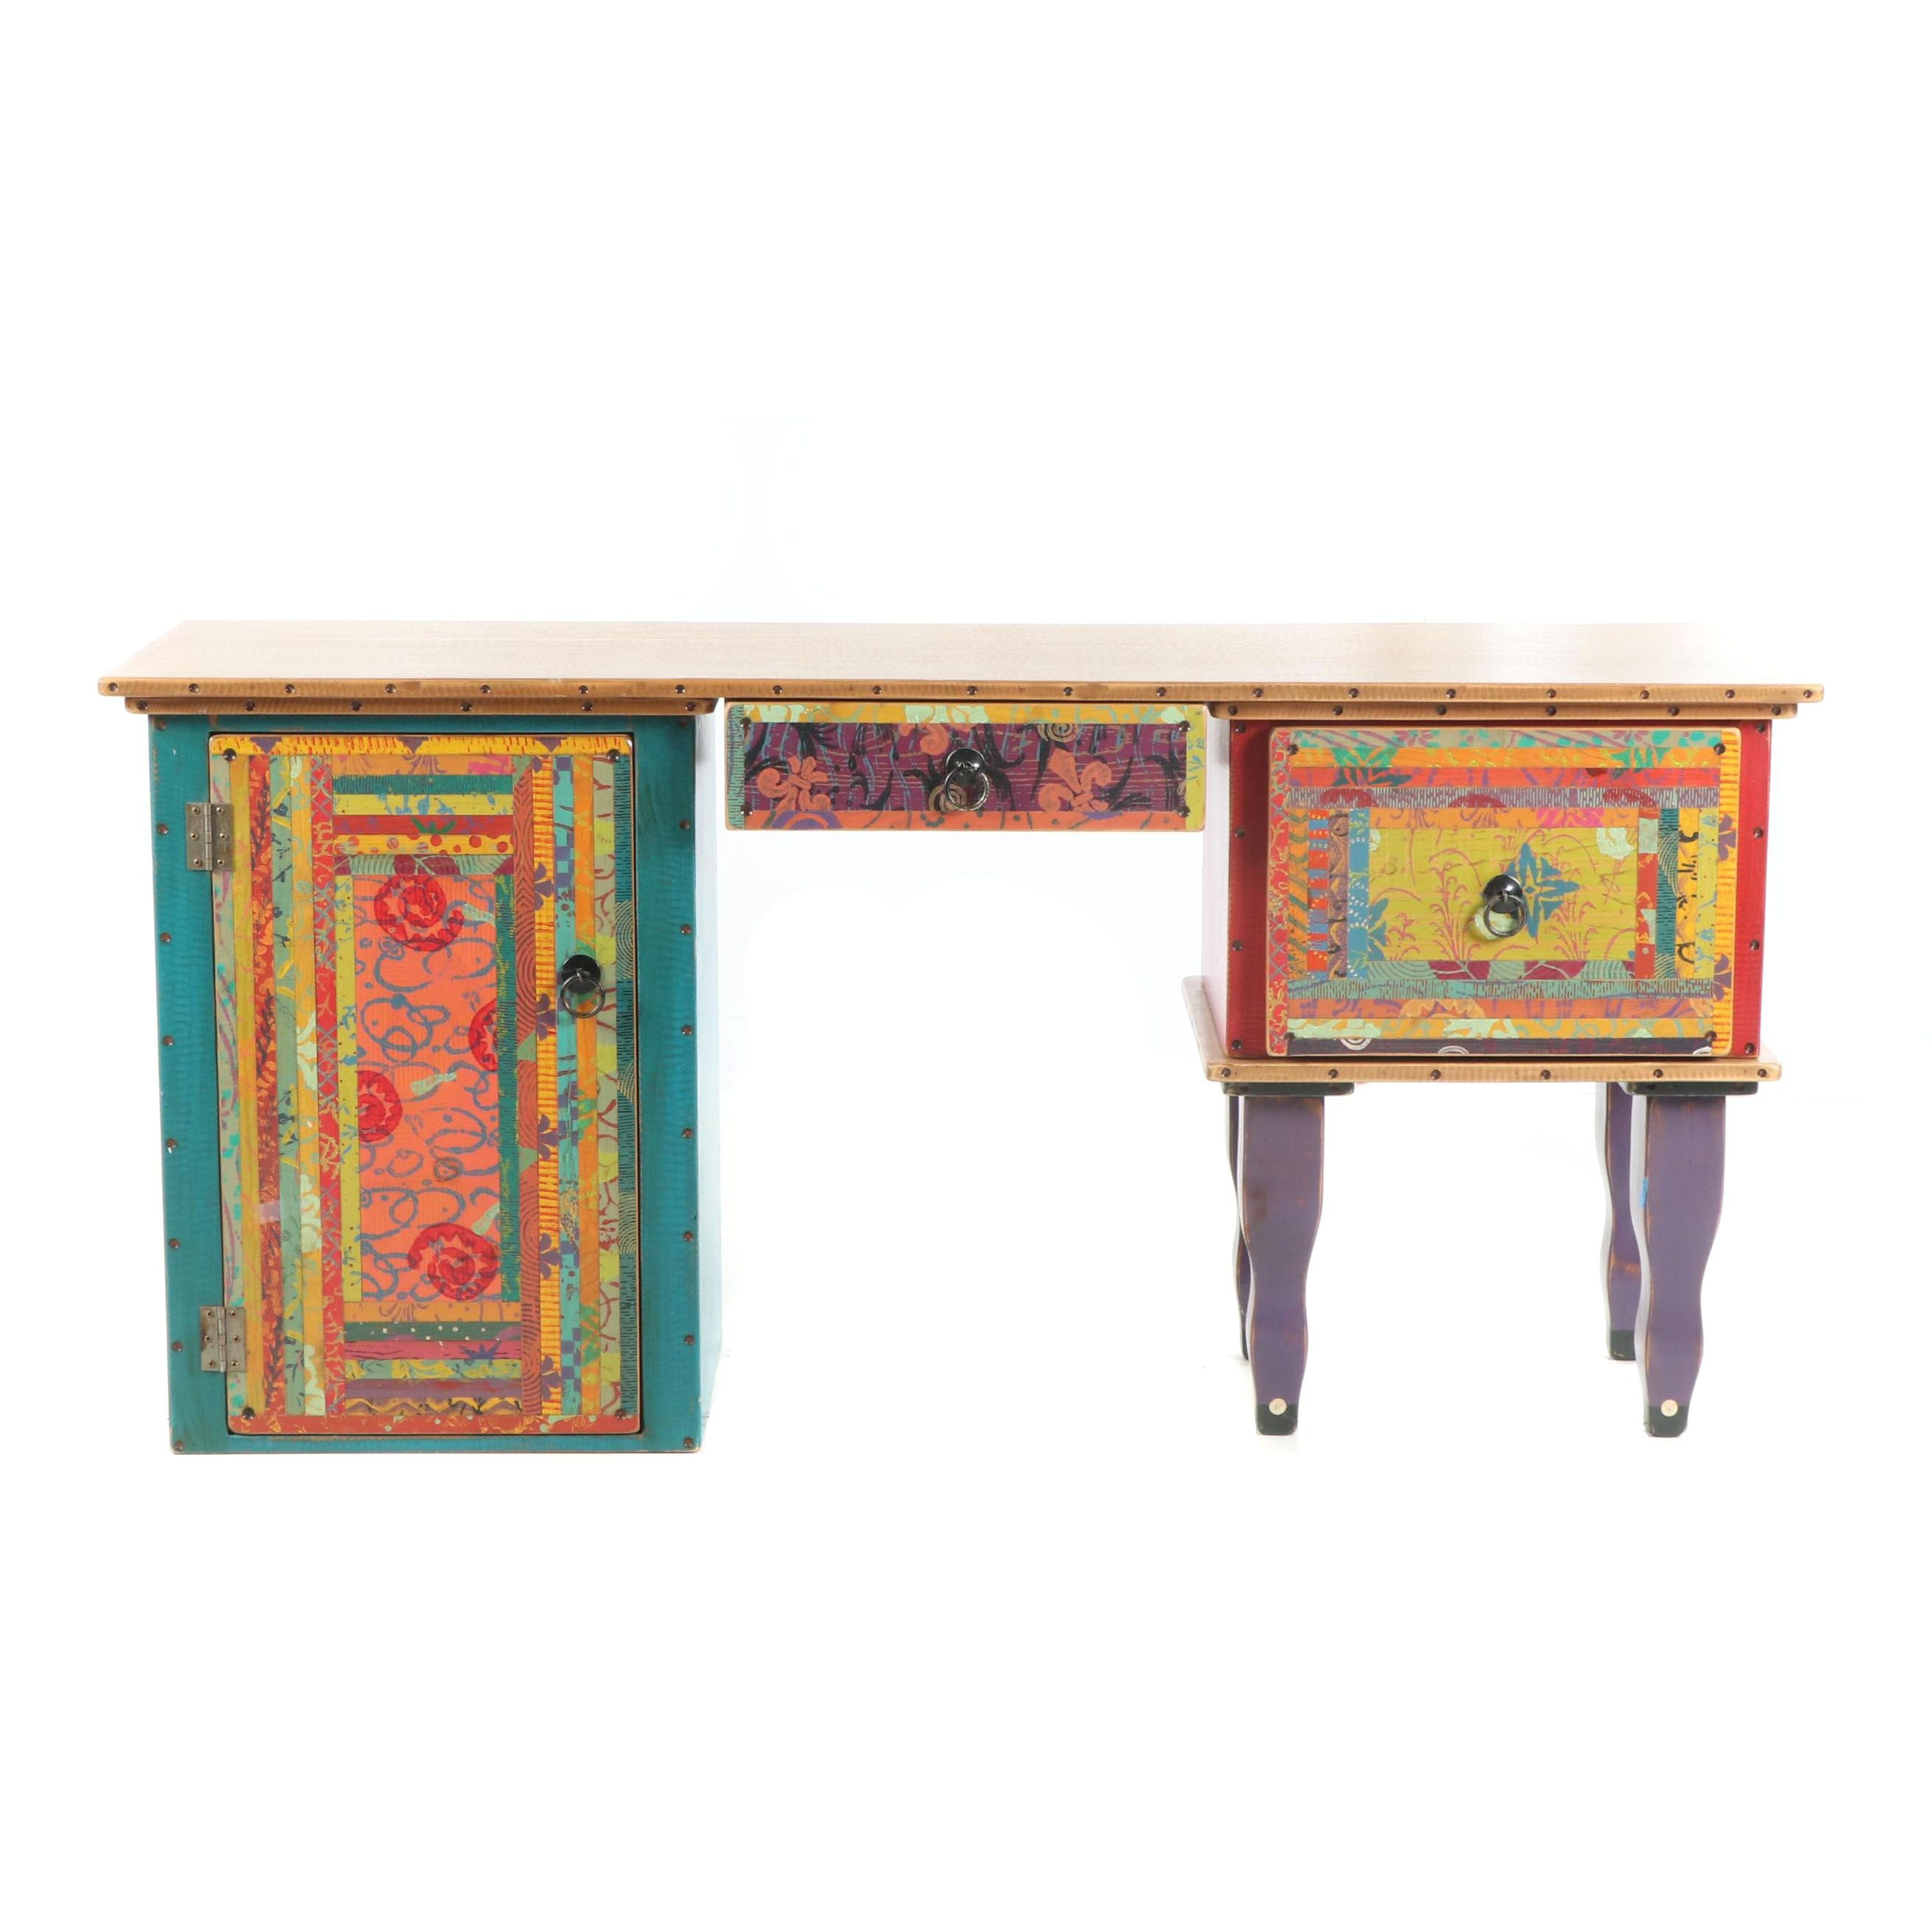 Hand-Painted Wood Three-Piece Desk by Shoestring Creations, 21st Century